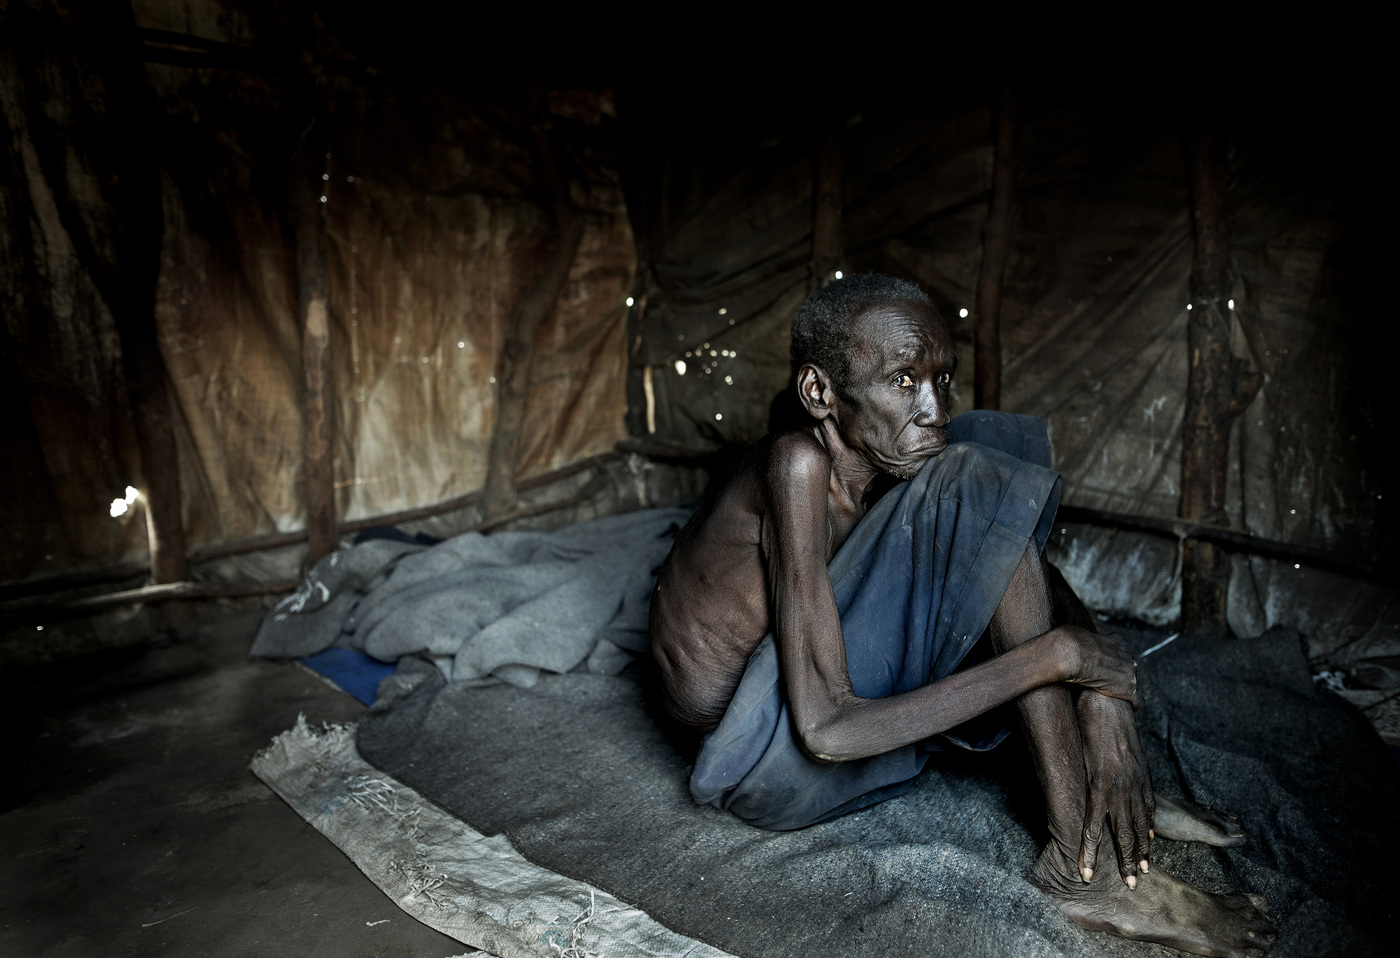 John T. Pedersen Photography - Sube Lokiri (76) sits mostly all day inside his tent. He is old and malnourished, and needs the help of the family to cope. He just wants to get back home to his village in South Sudan.